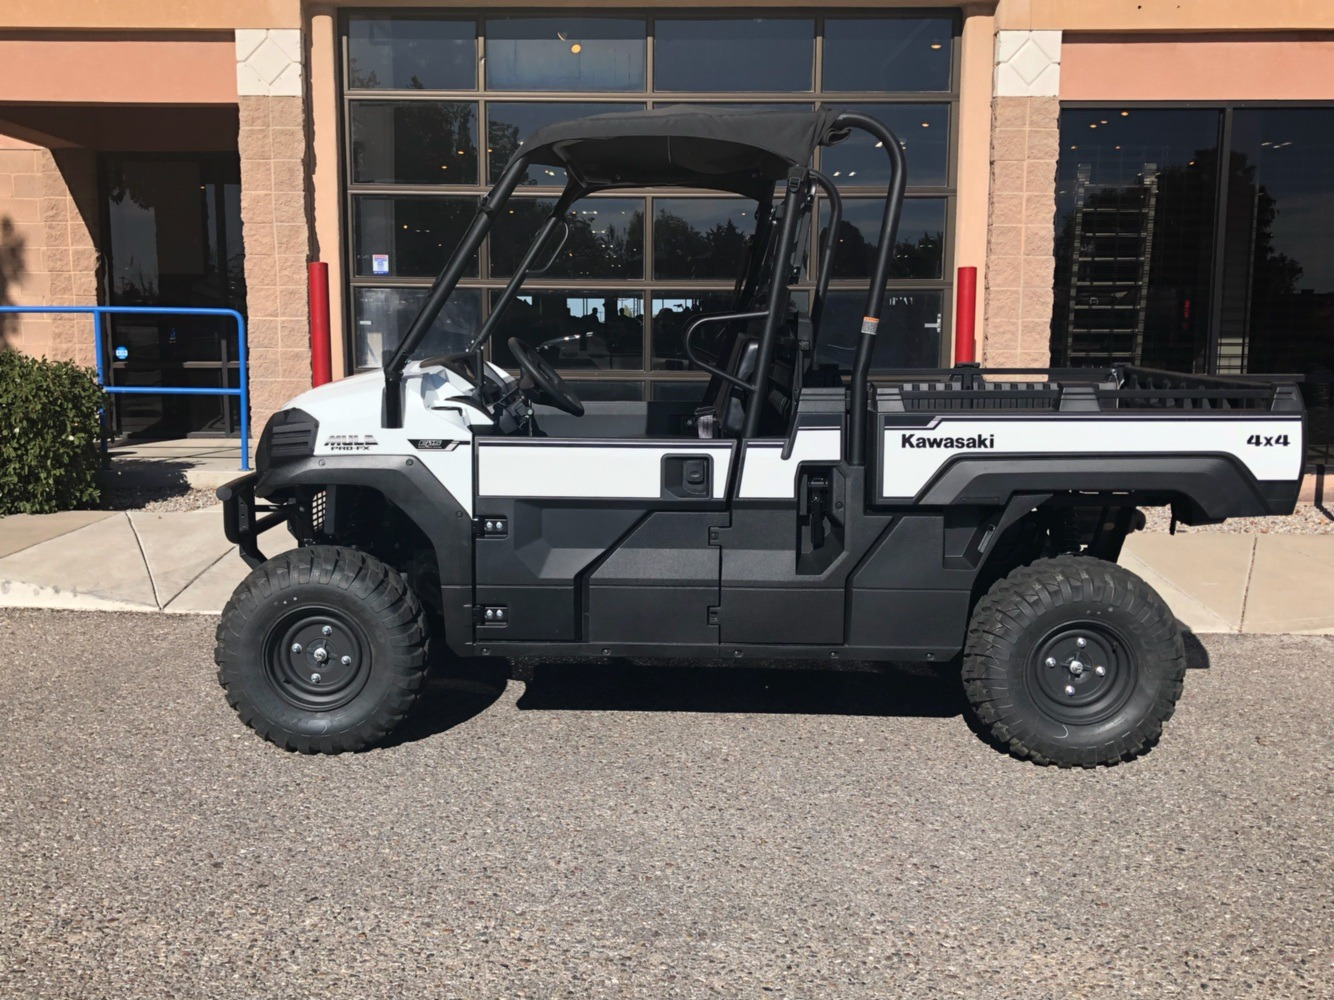 2020 Kawasaki Mule PRO-FX EPS in Albuquerque, New Mexico - Photo 4